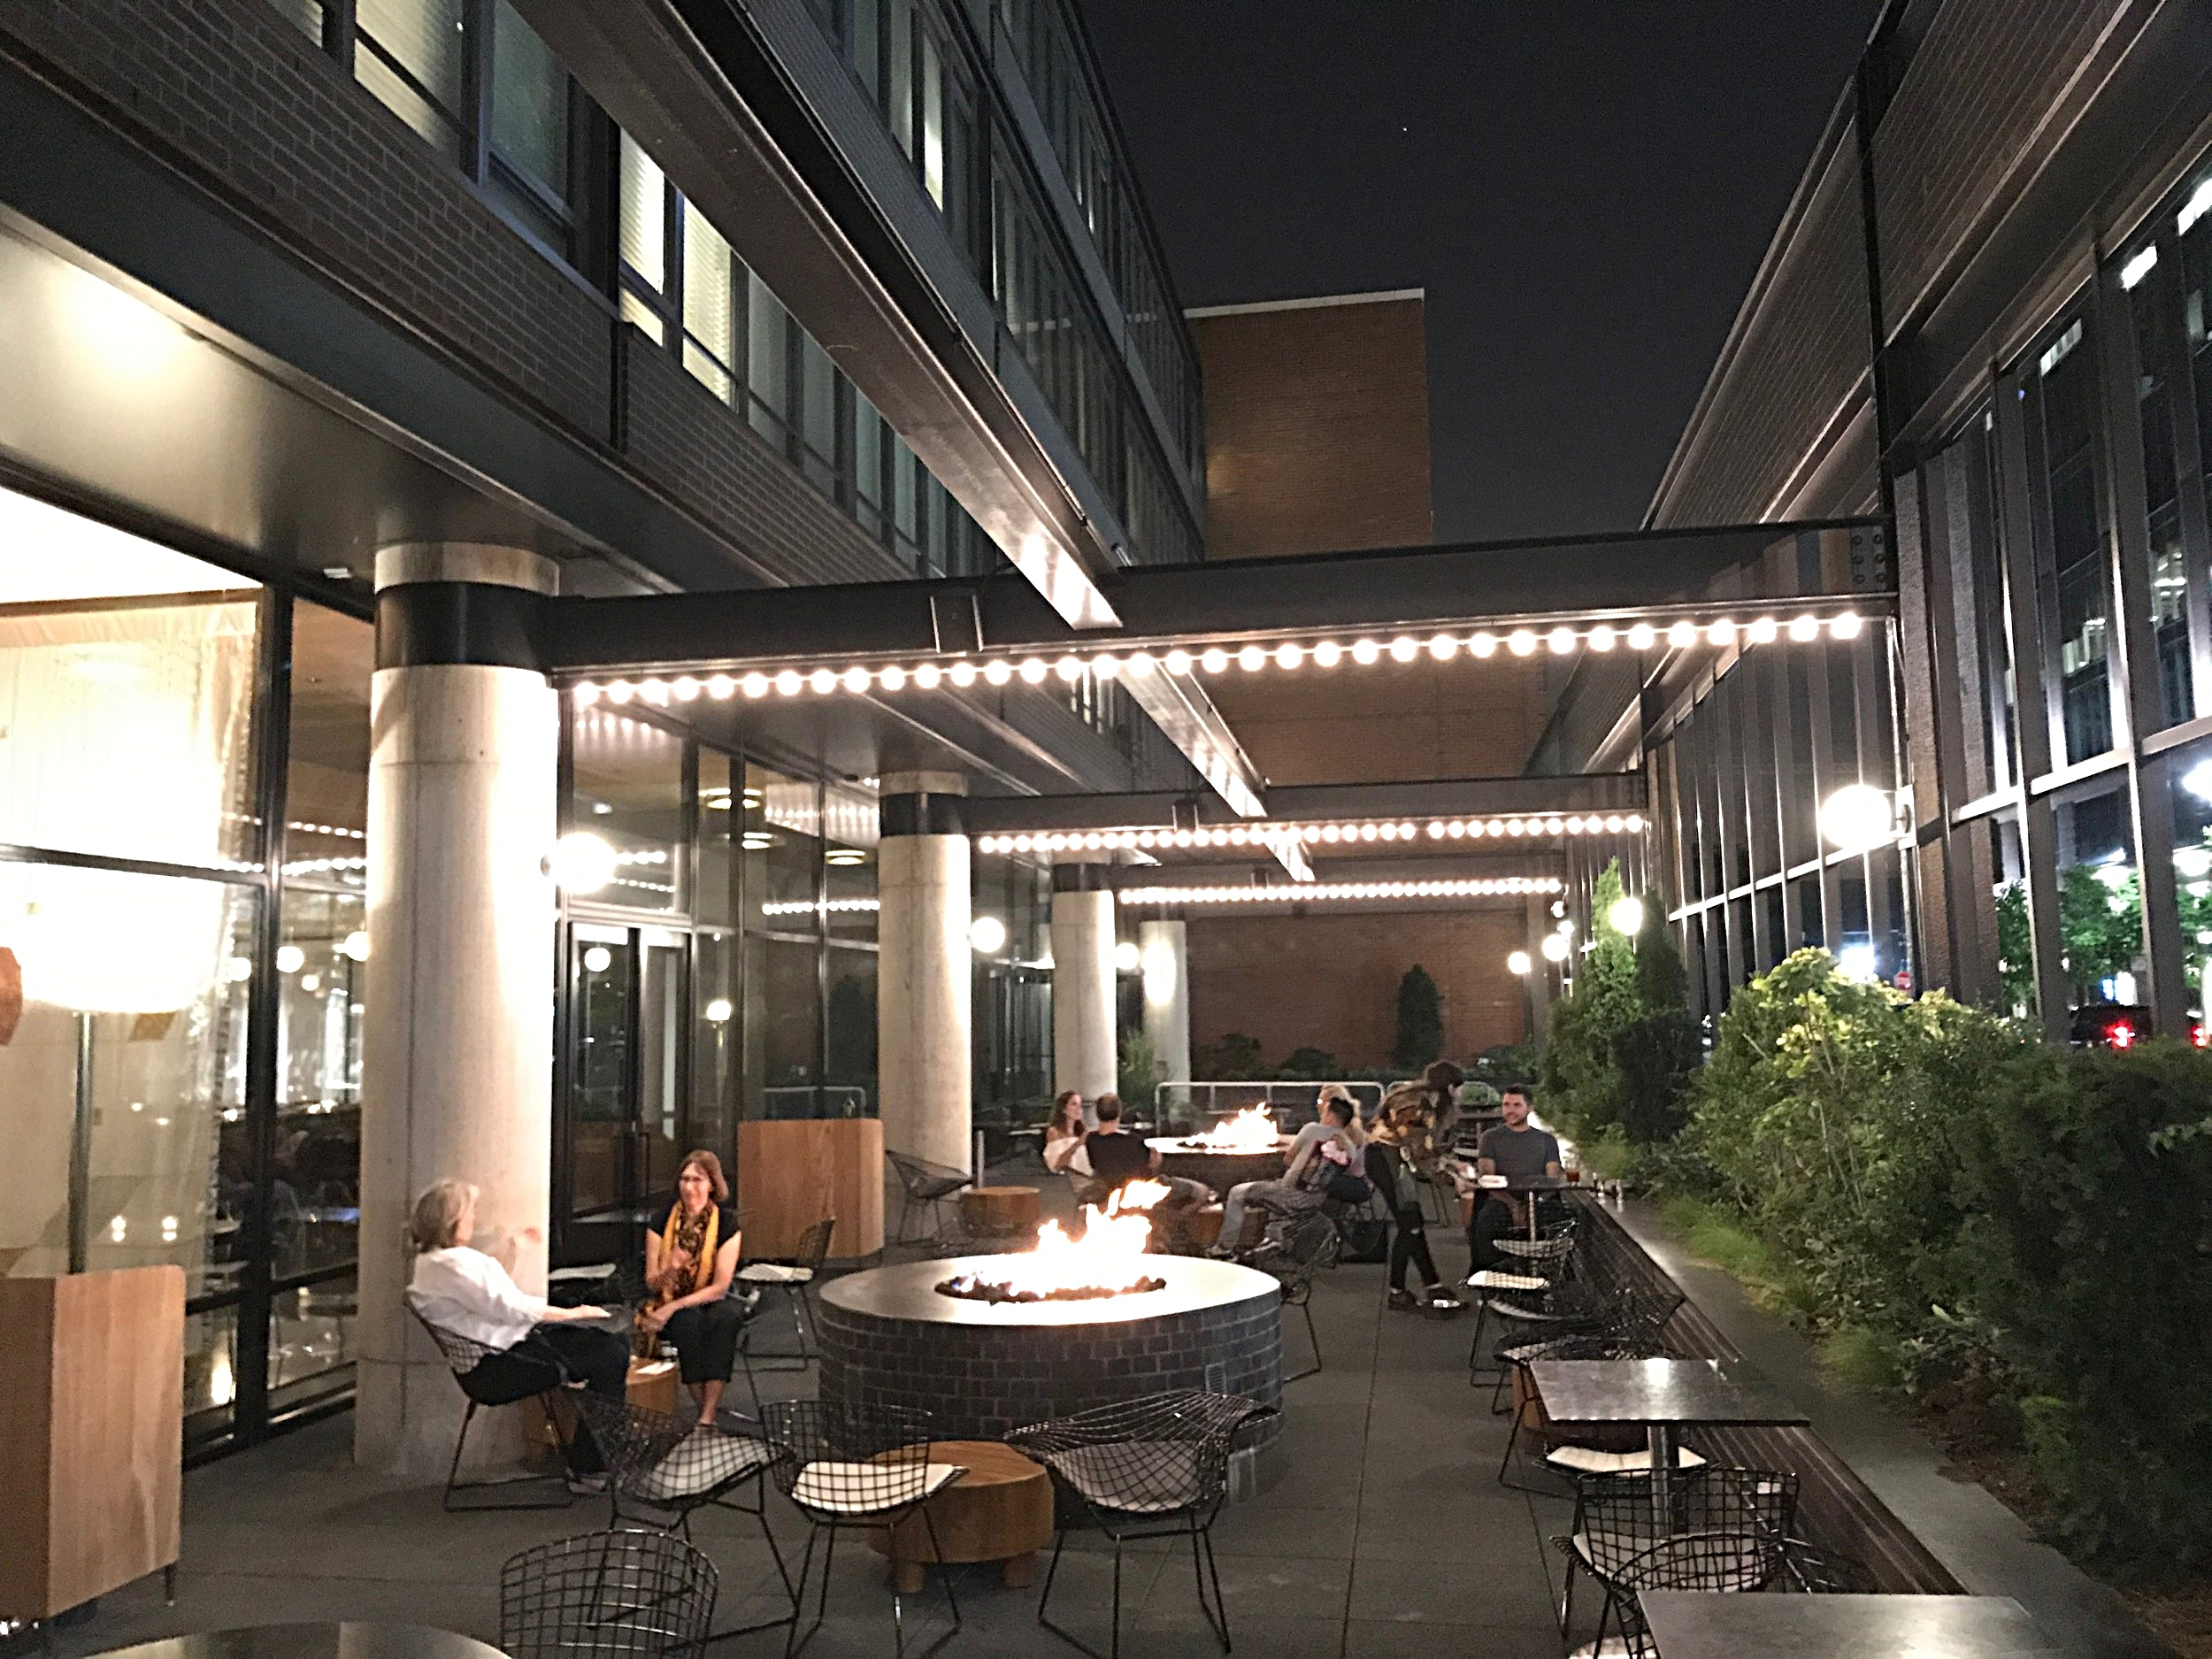 The outdoor patio at  City Mouse .